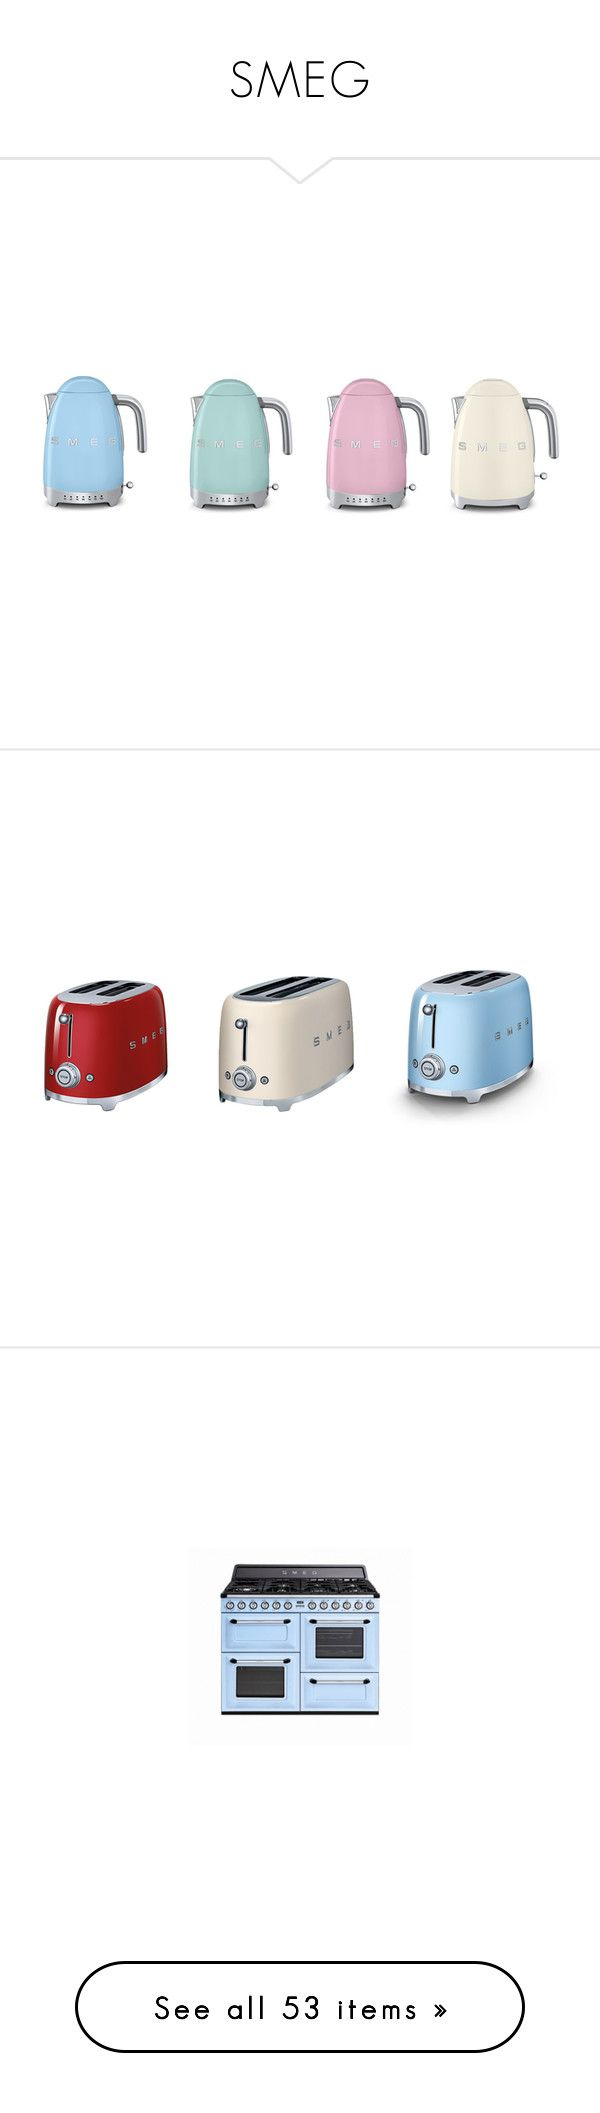 Kitchen small appliances victoria bc -  Smeg By Hayley247 Liked On Polyvore Featuring Home Kitchen Dining Small Appliancestoasterpastel